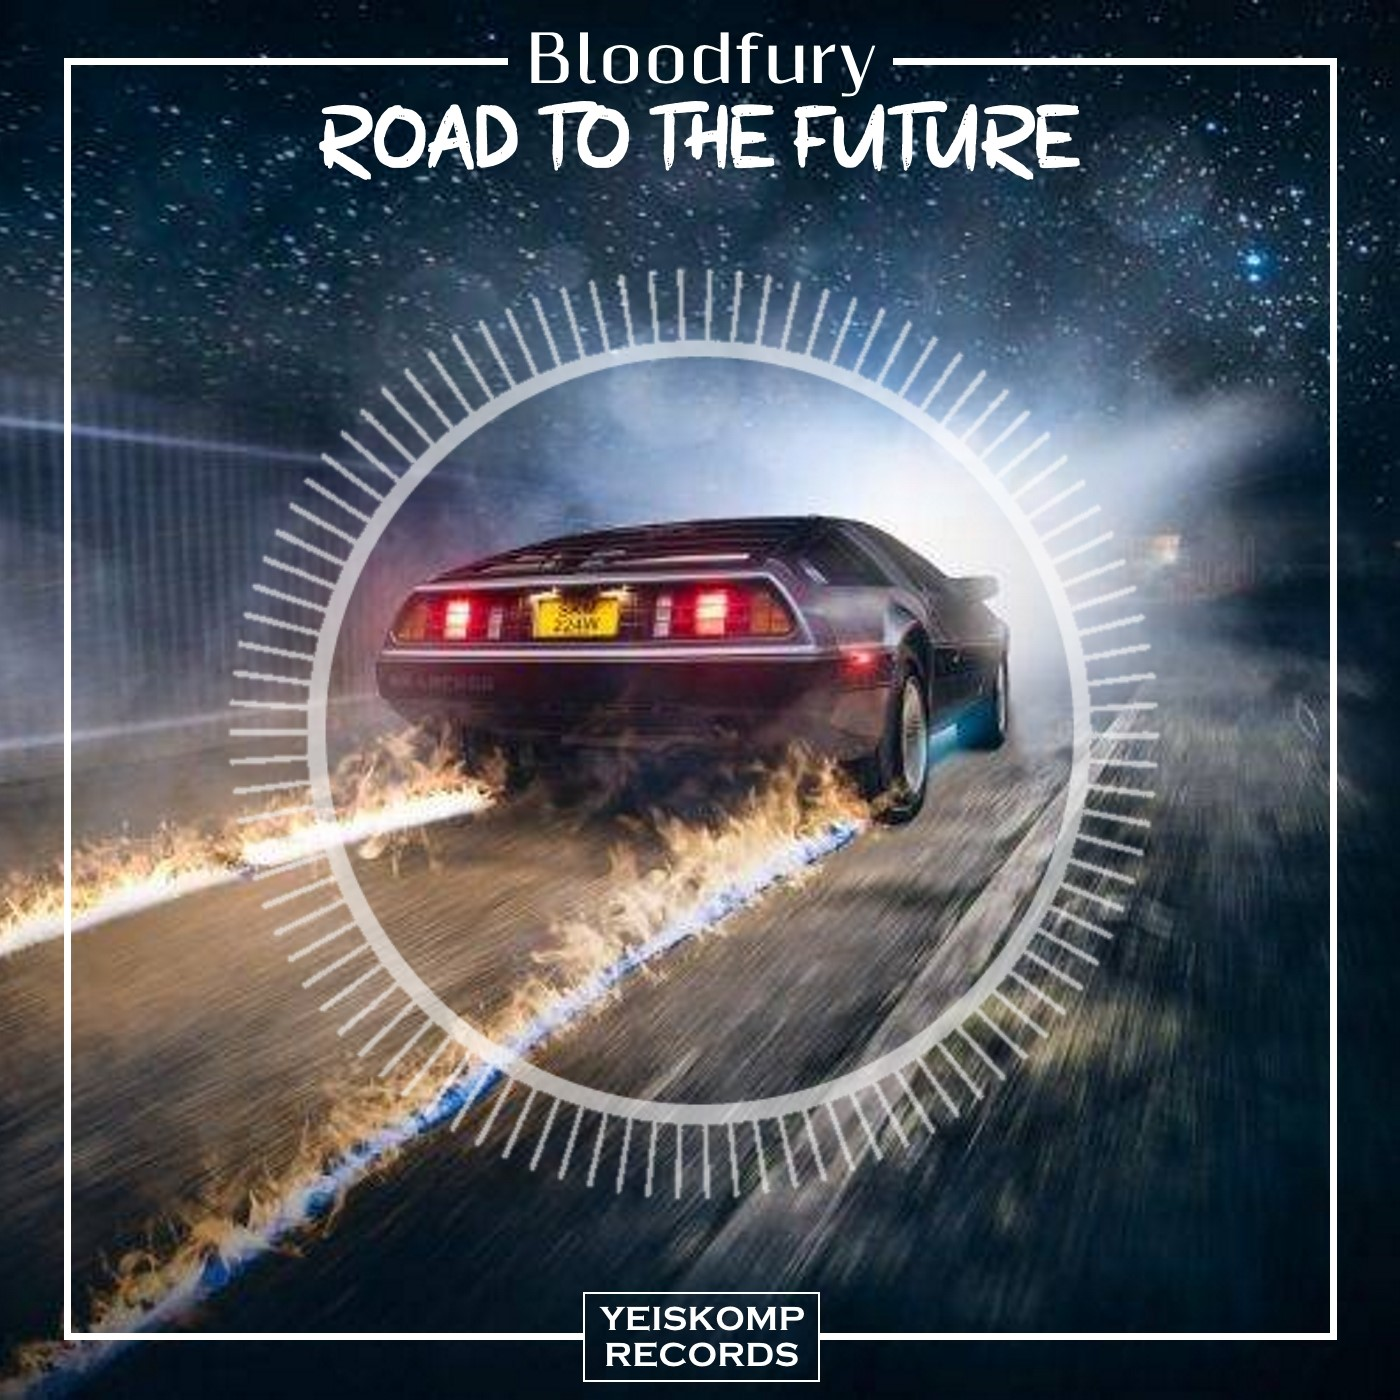 Bloodfury - Road To The Future (Original Mix)